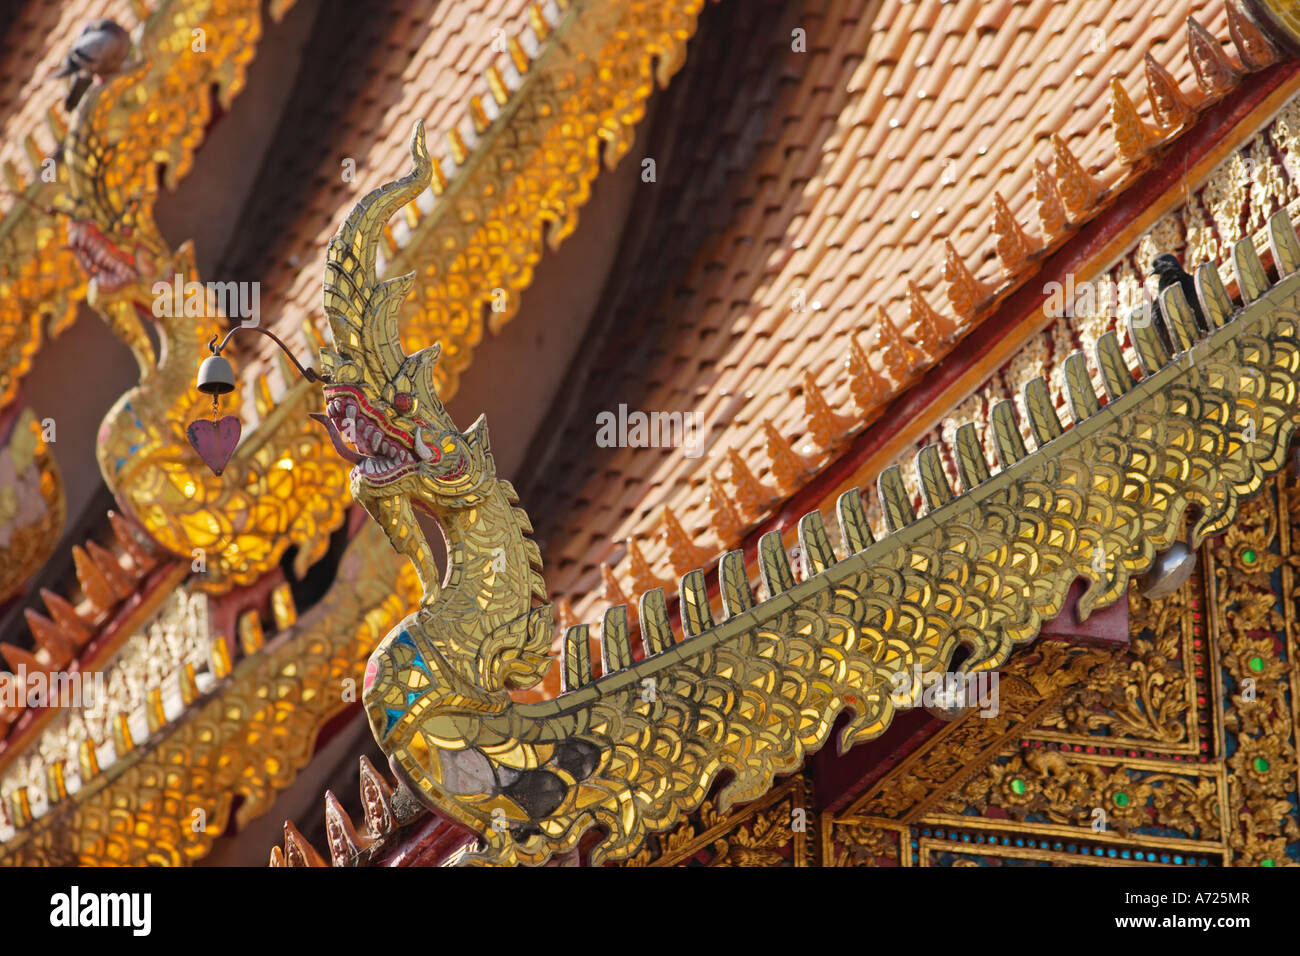 Fragment of the roof and finials. Wat Bupparam, Chiang Mai, Thailand. Stock Photo